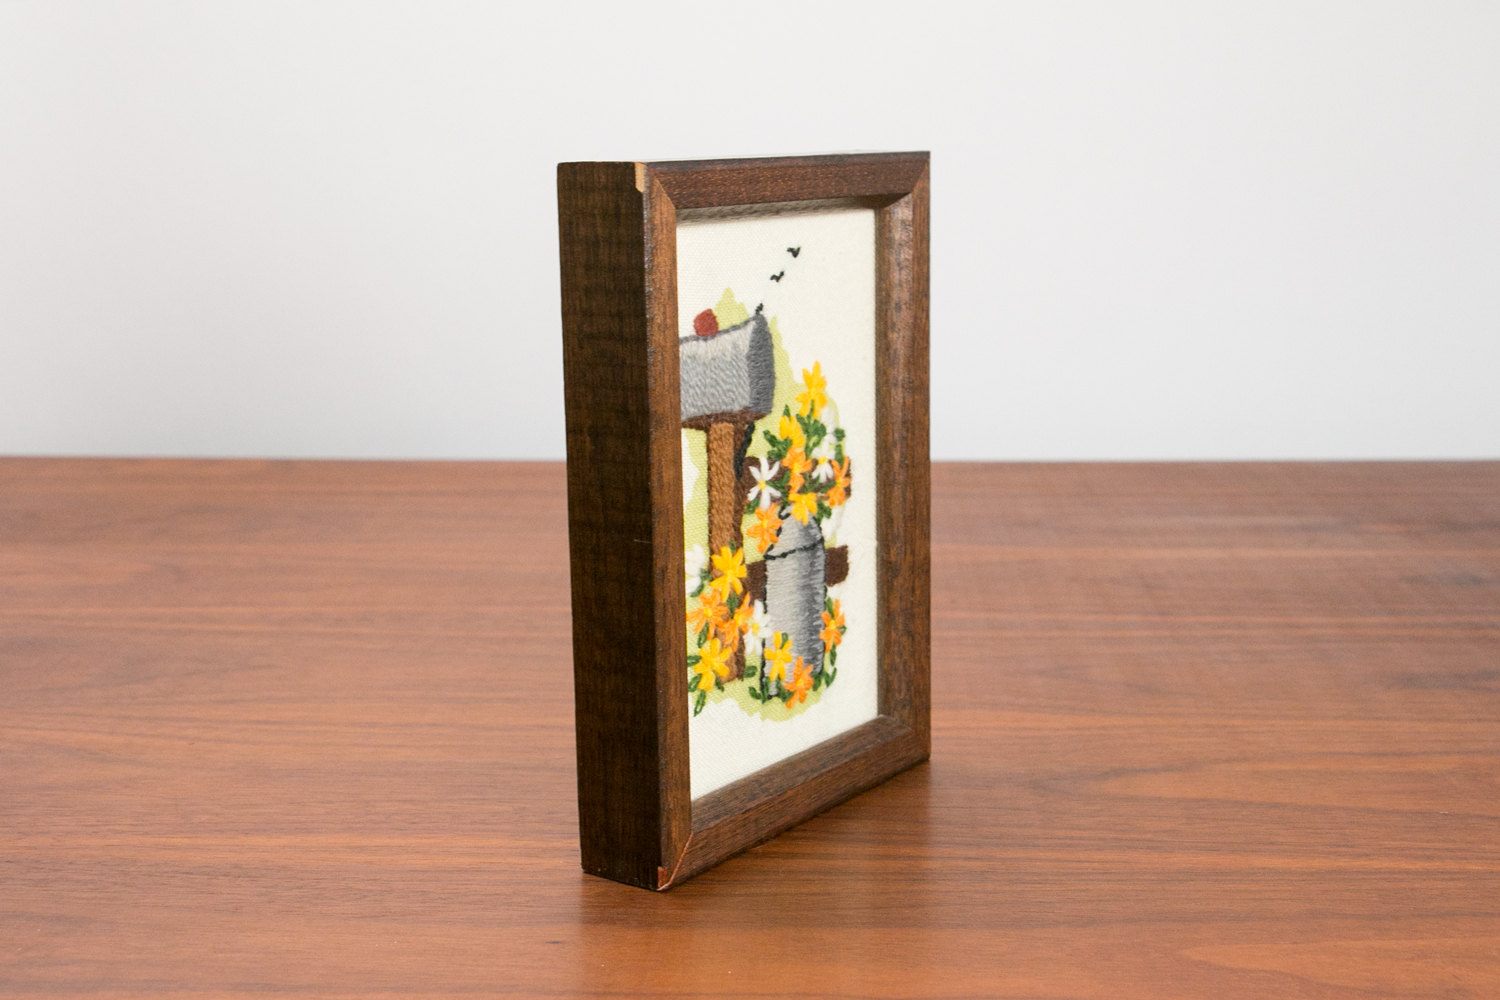 Vintage 1950's Framed Needlepoint of Mailbox with Spring Flowers, Bucket, Birds, Grass - Small, Wood Frame, Mid Century, Retro, Hipster